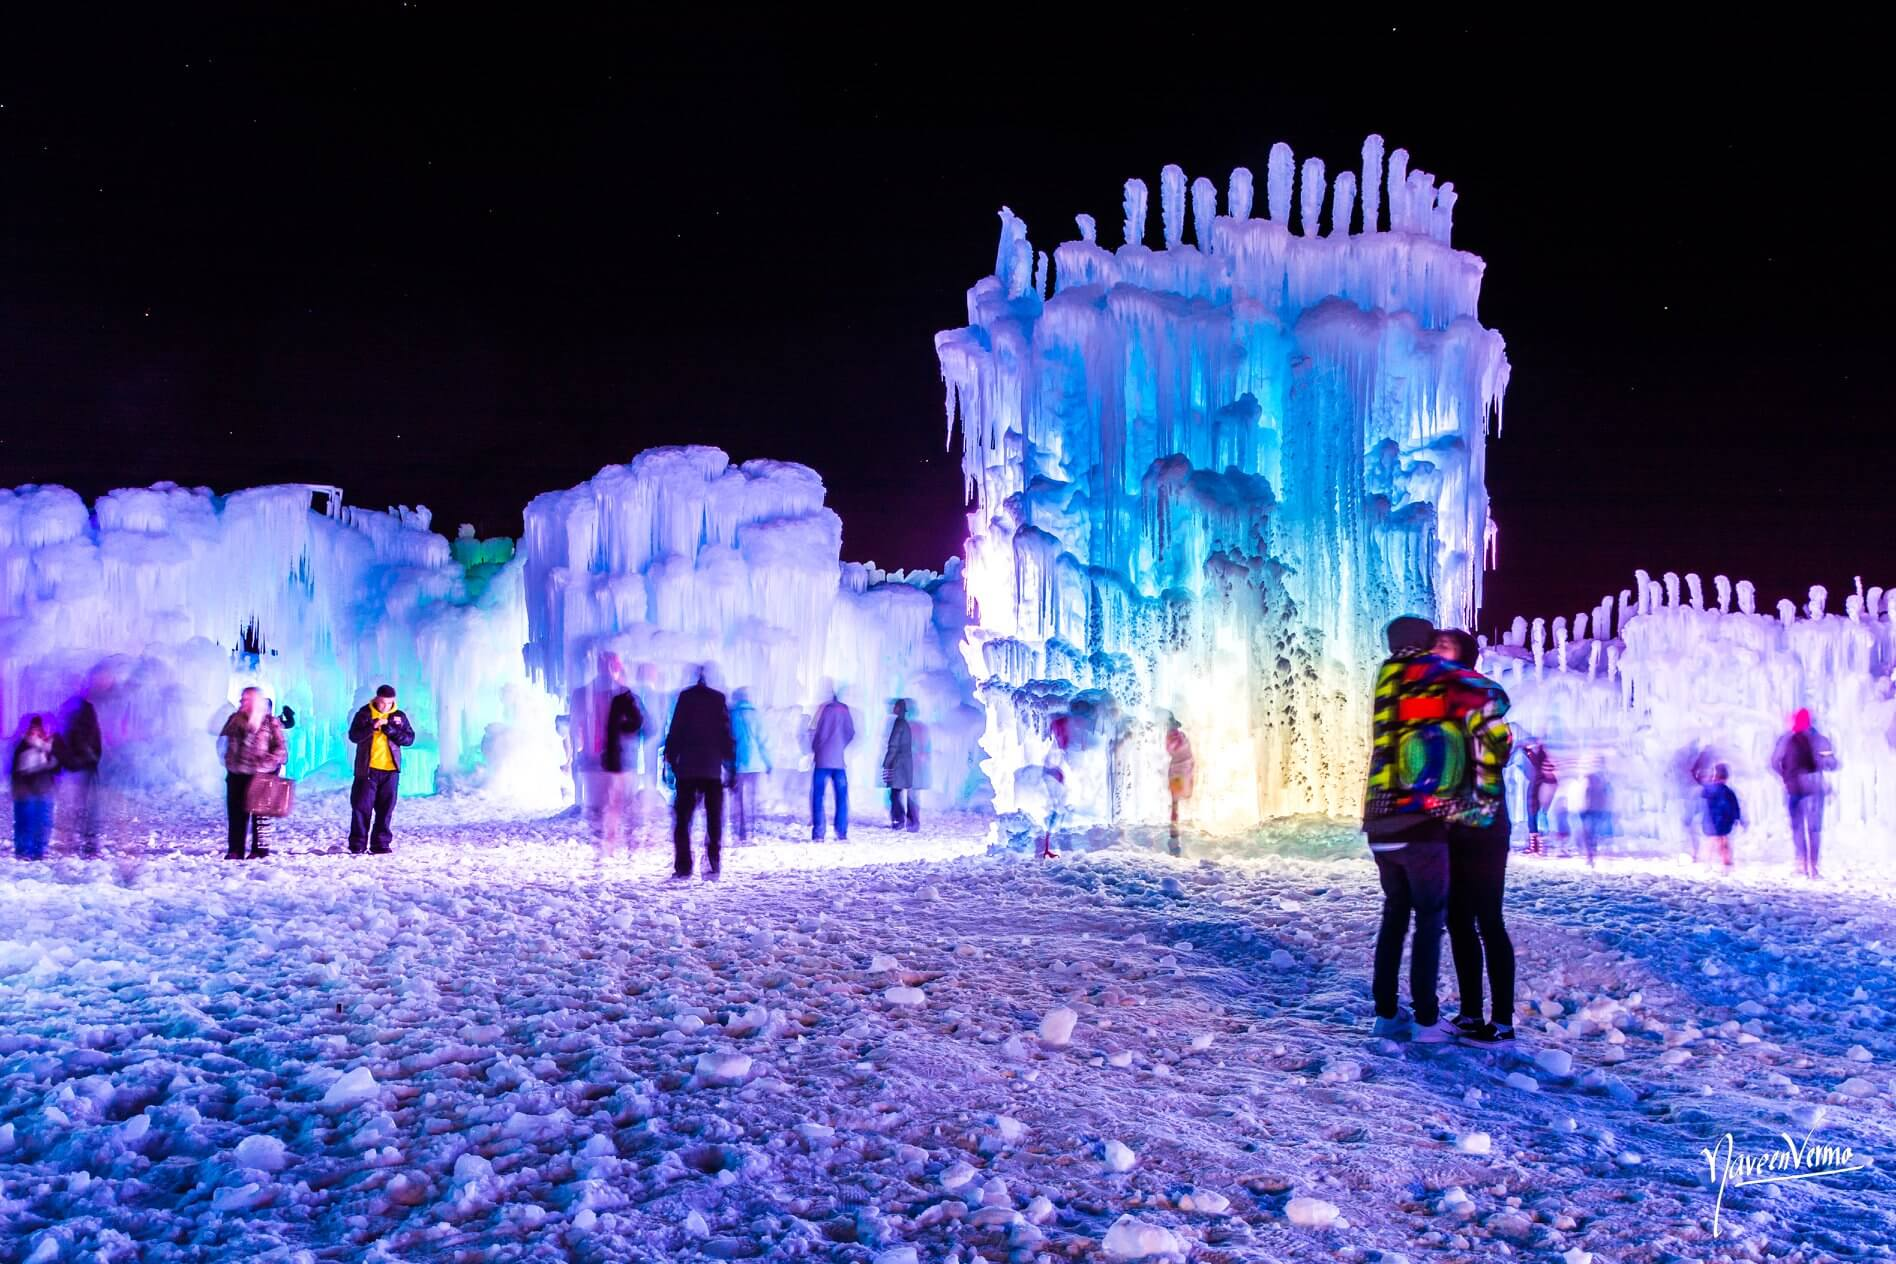 Explore Ice Castles + Go On A Frozen Adventure This Winter